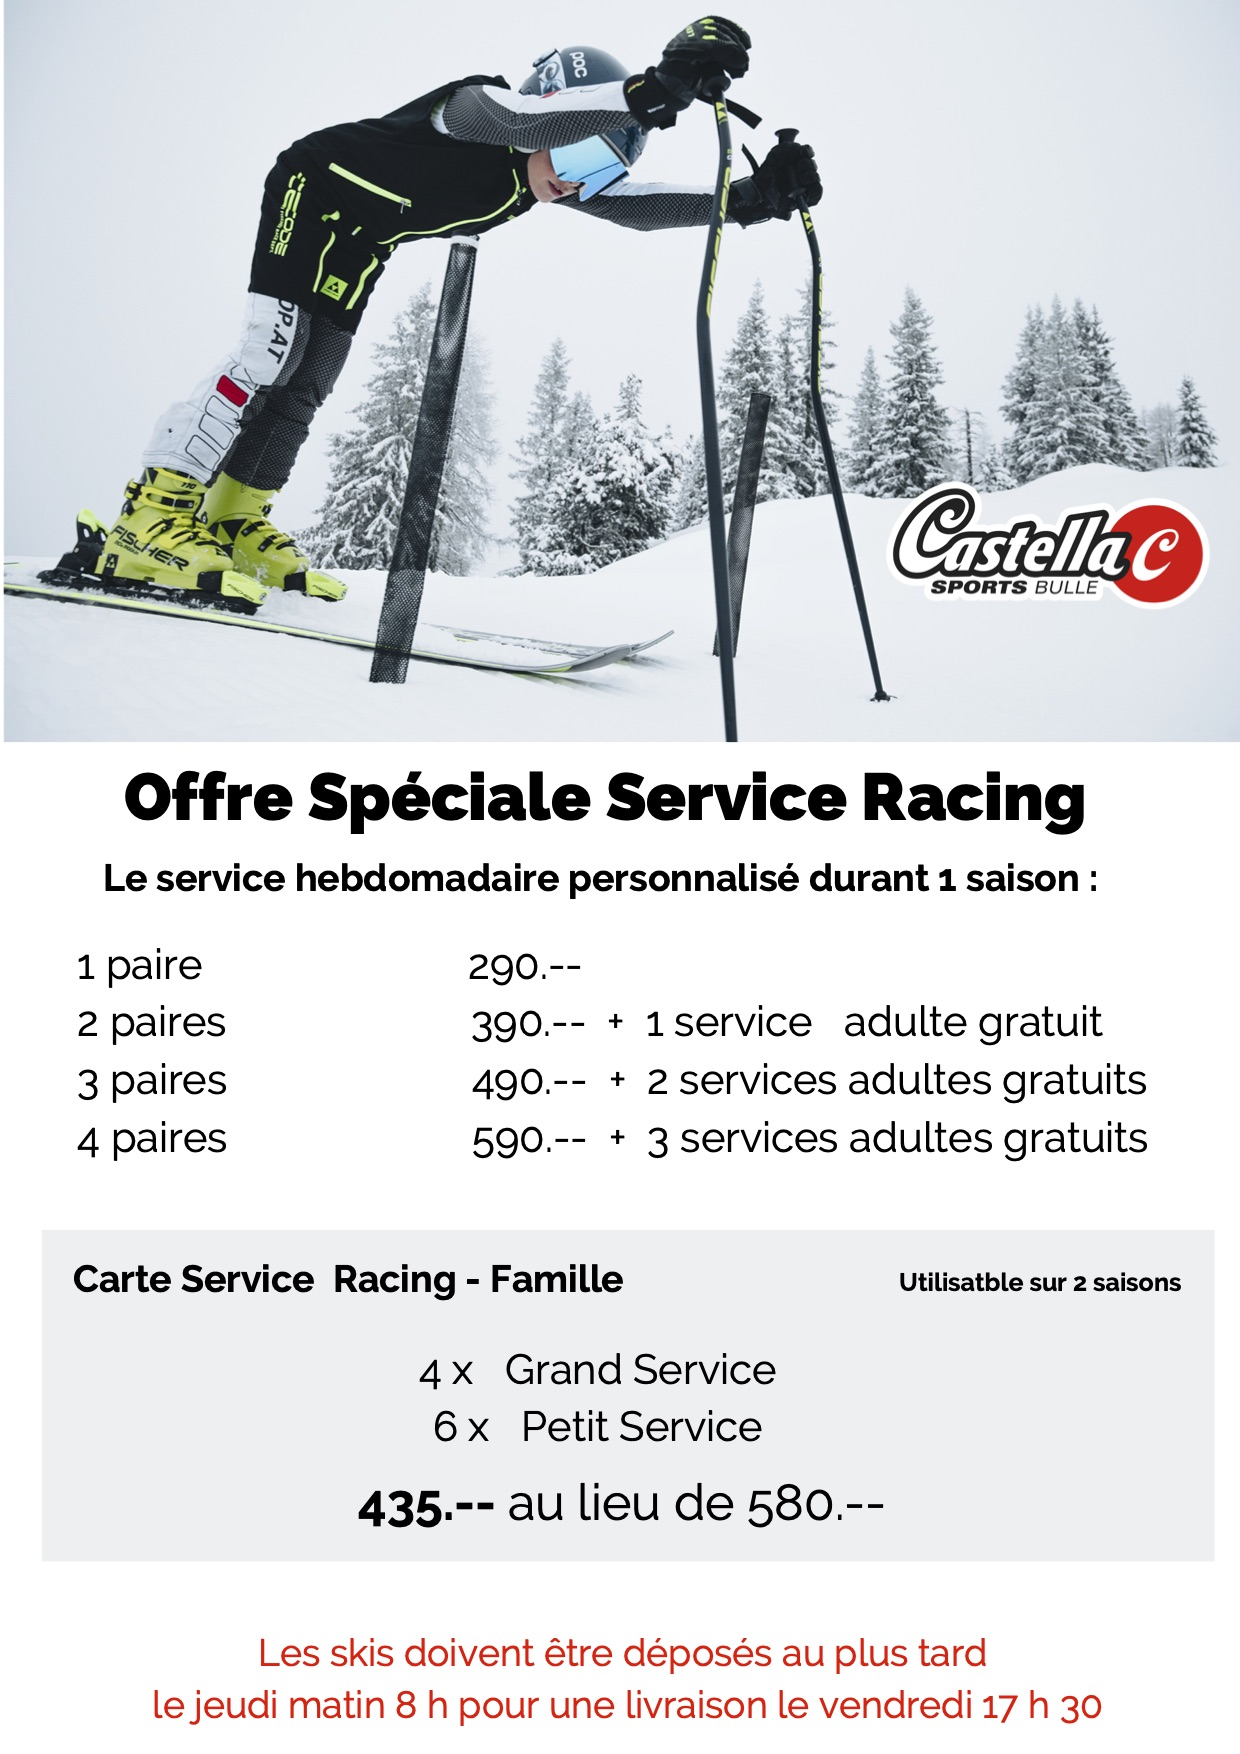 Service de ski racing version 3